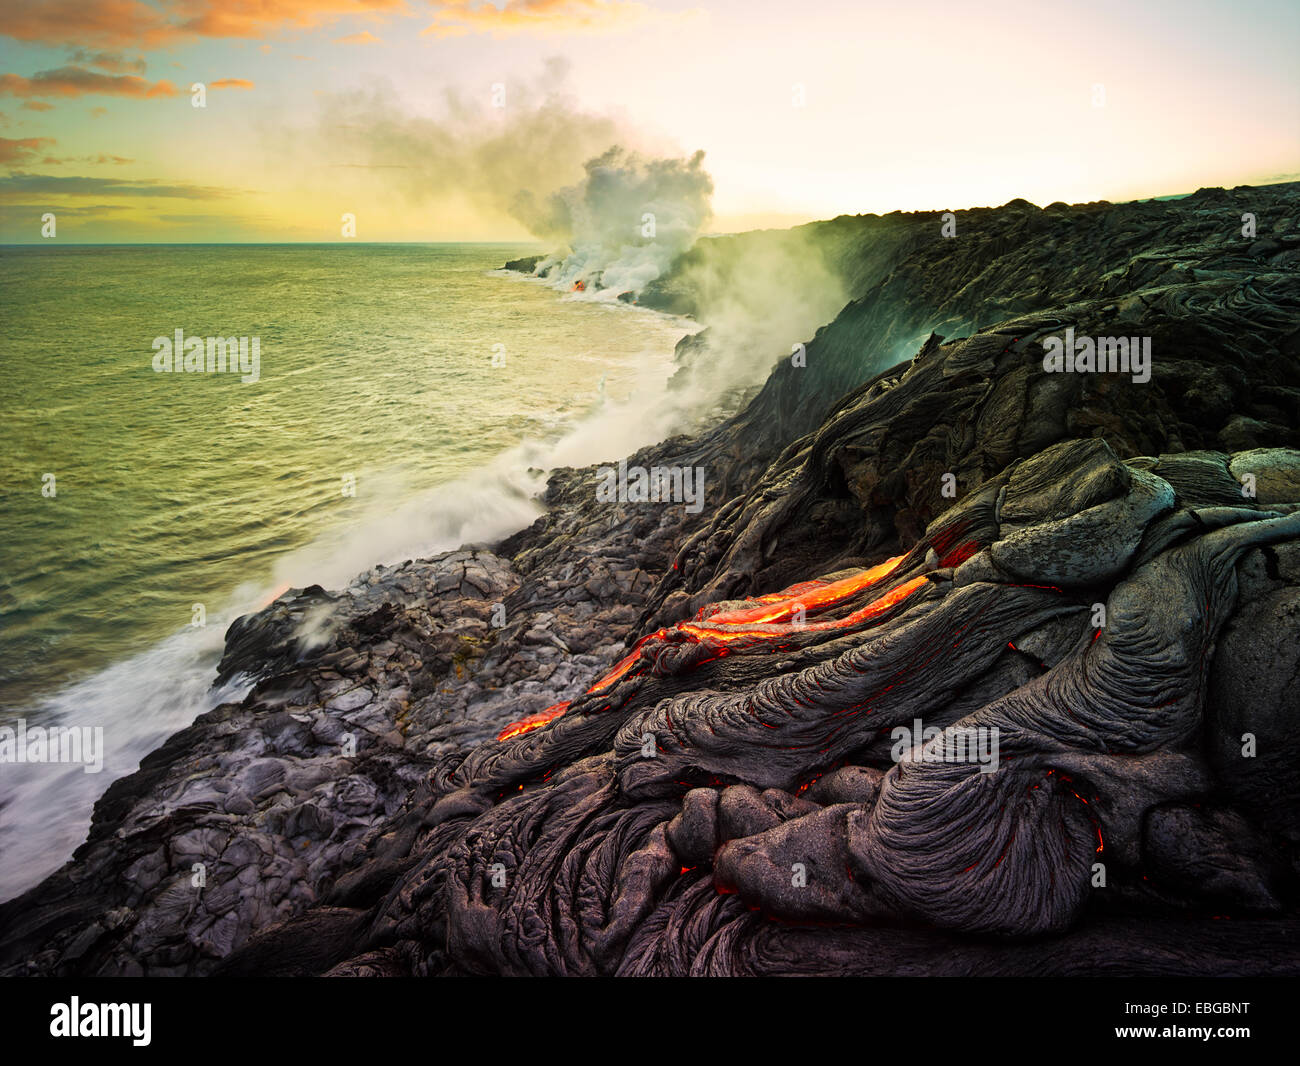 Puʻu ʻŌʻō or Puu Oo volcano, volcanic eruption, lava flow, red hot lava flowing into the Pacific Ocean - Stock Image